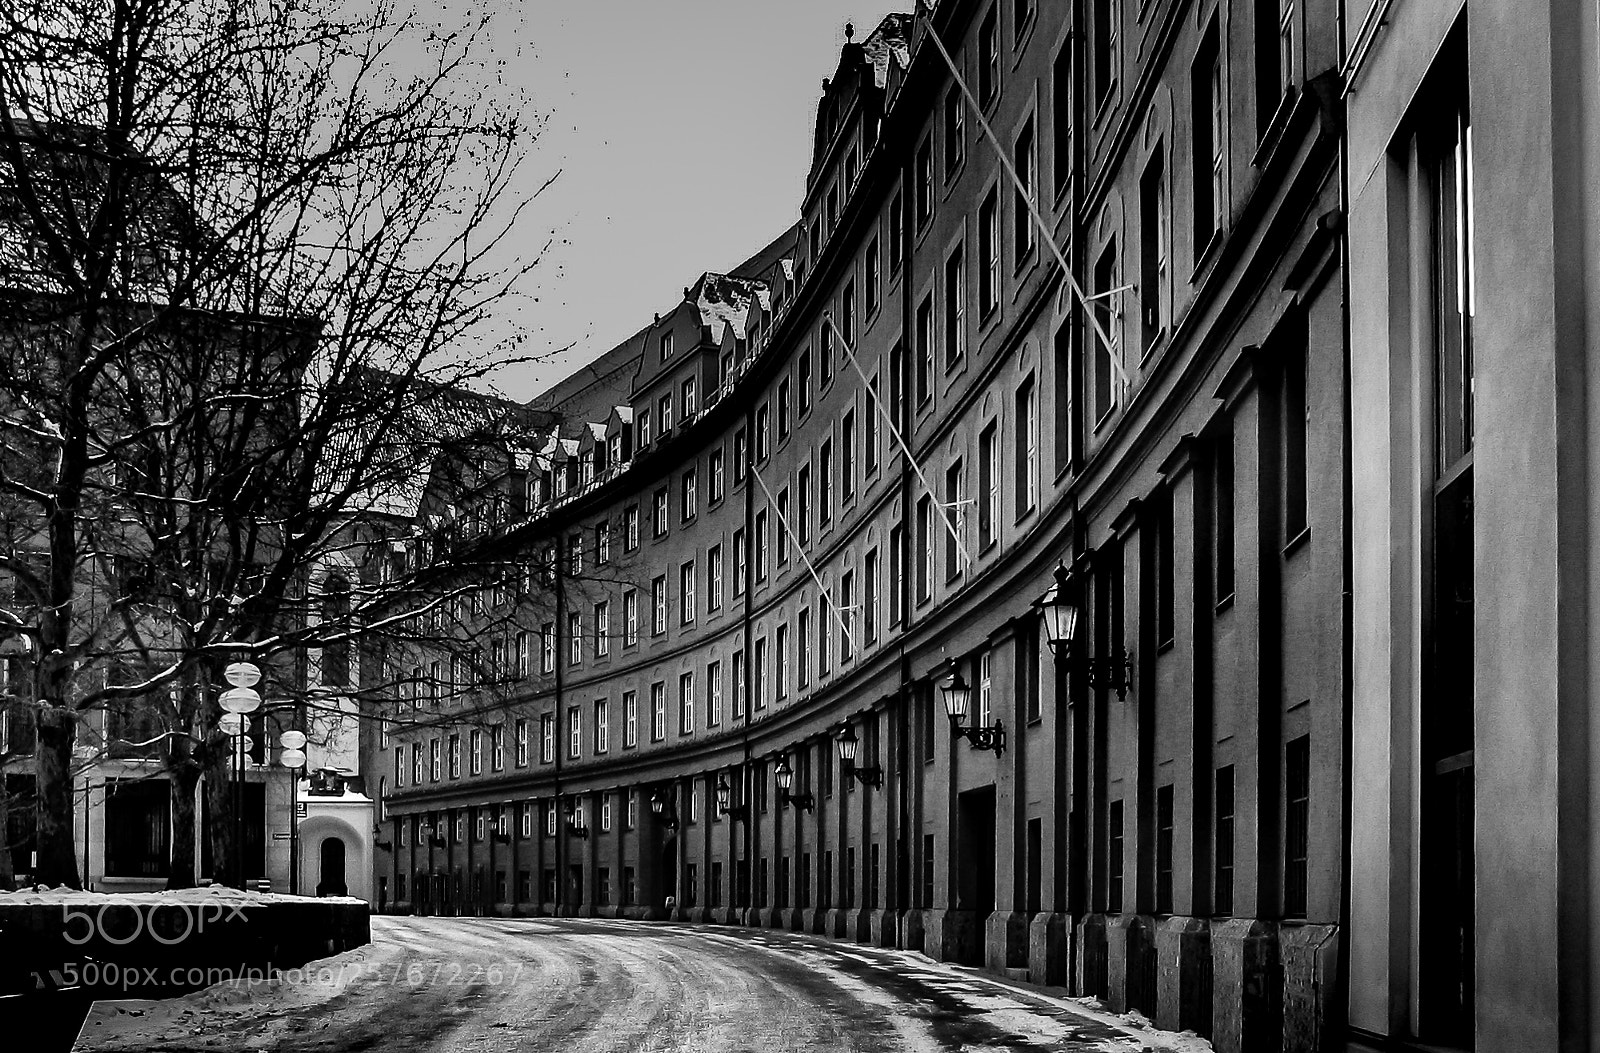 """Canon POWERSHOT S1 IS sample photo. """"Alley in munich germany"""" photography"""